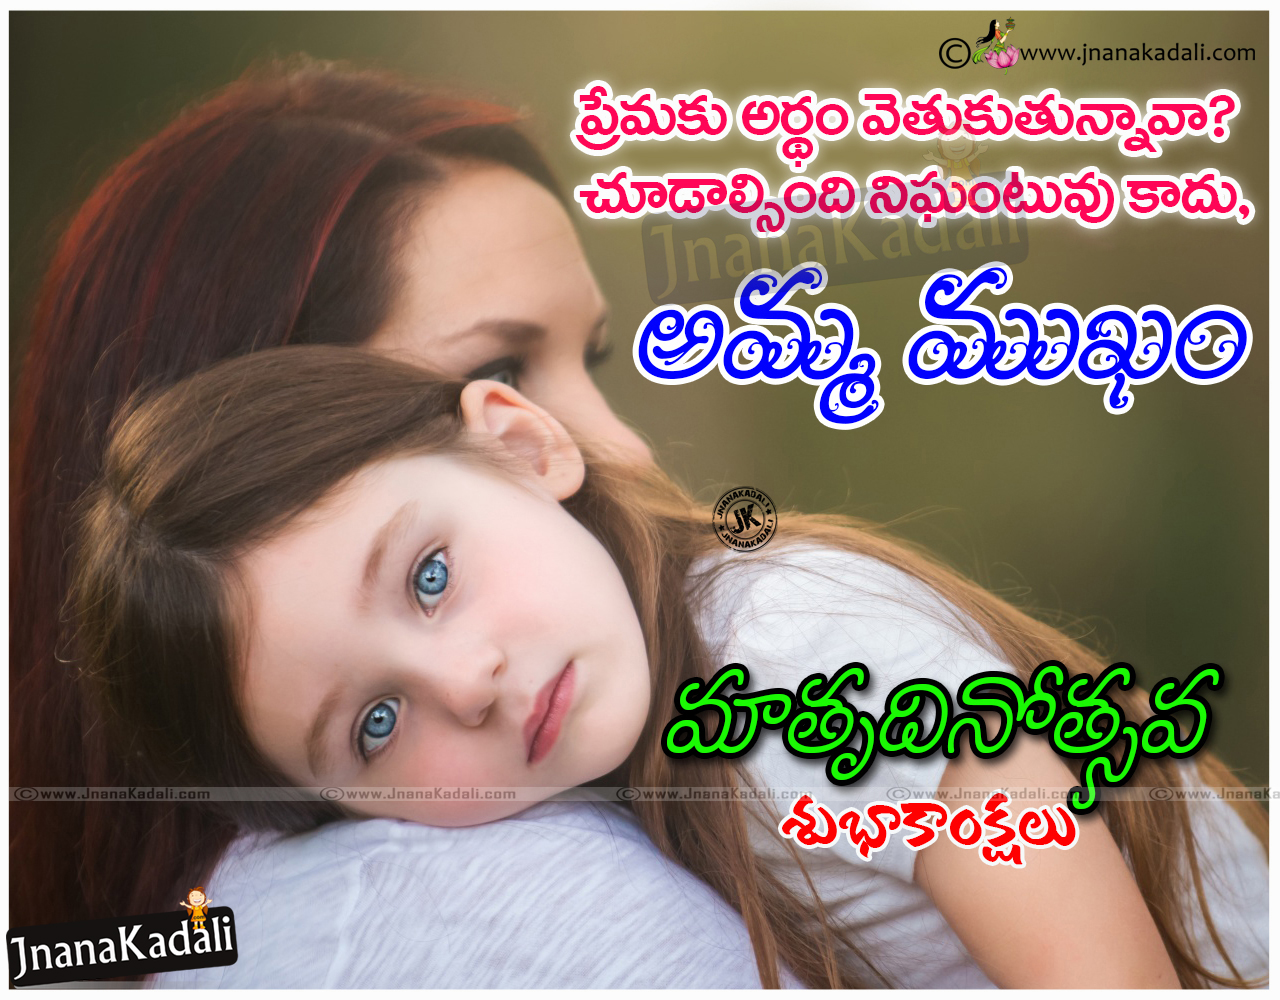 Here is a Telugu Popular Heart Touching Mother Quotes with Mother Raghuvaran Btech Telugu